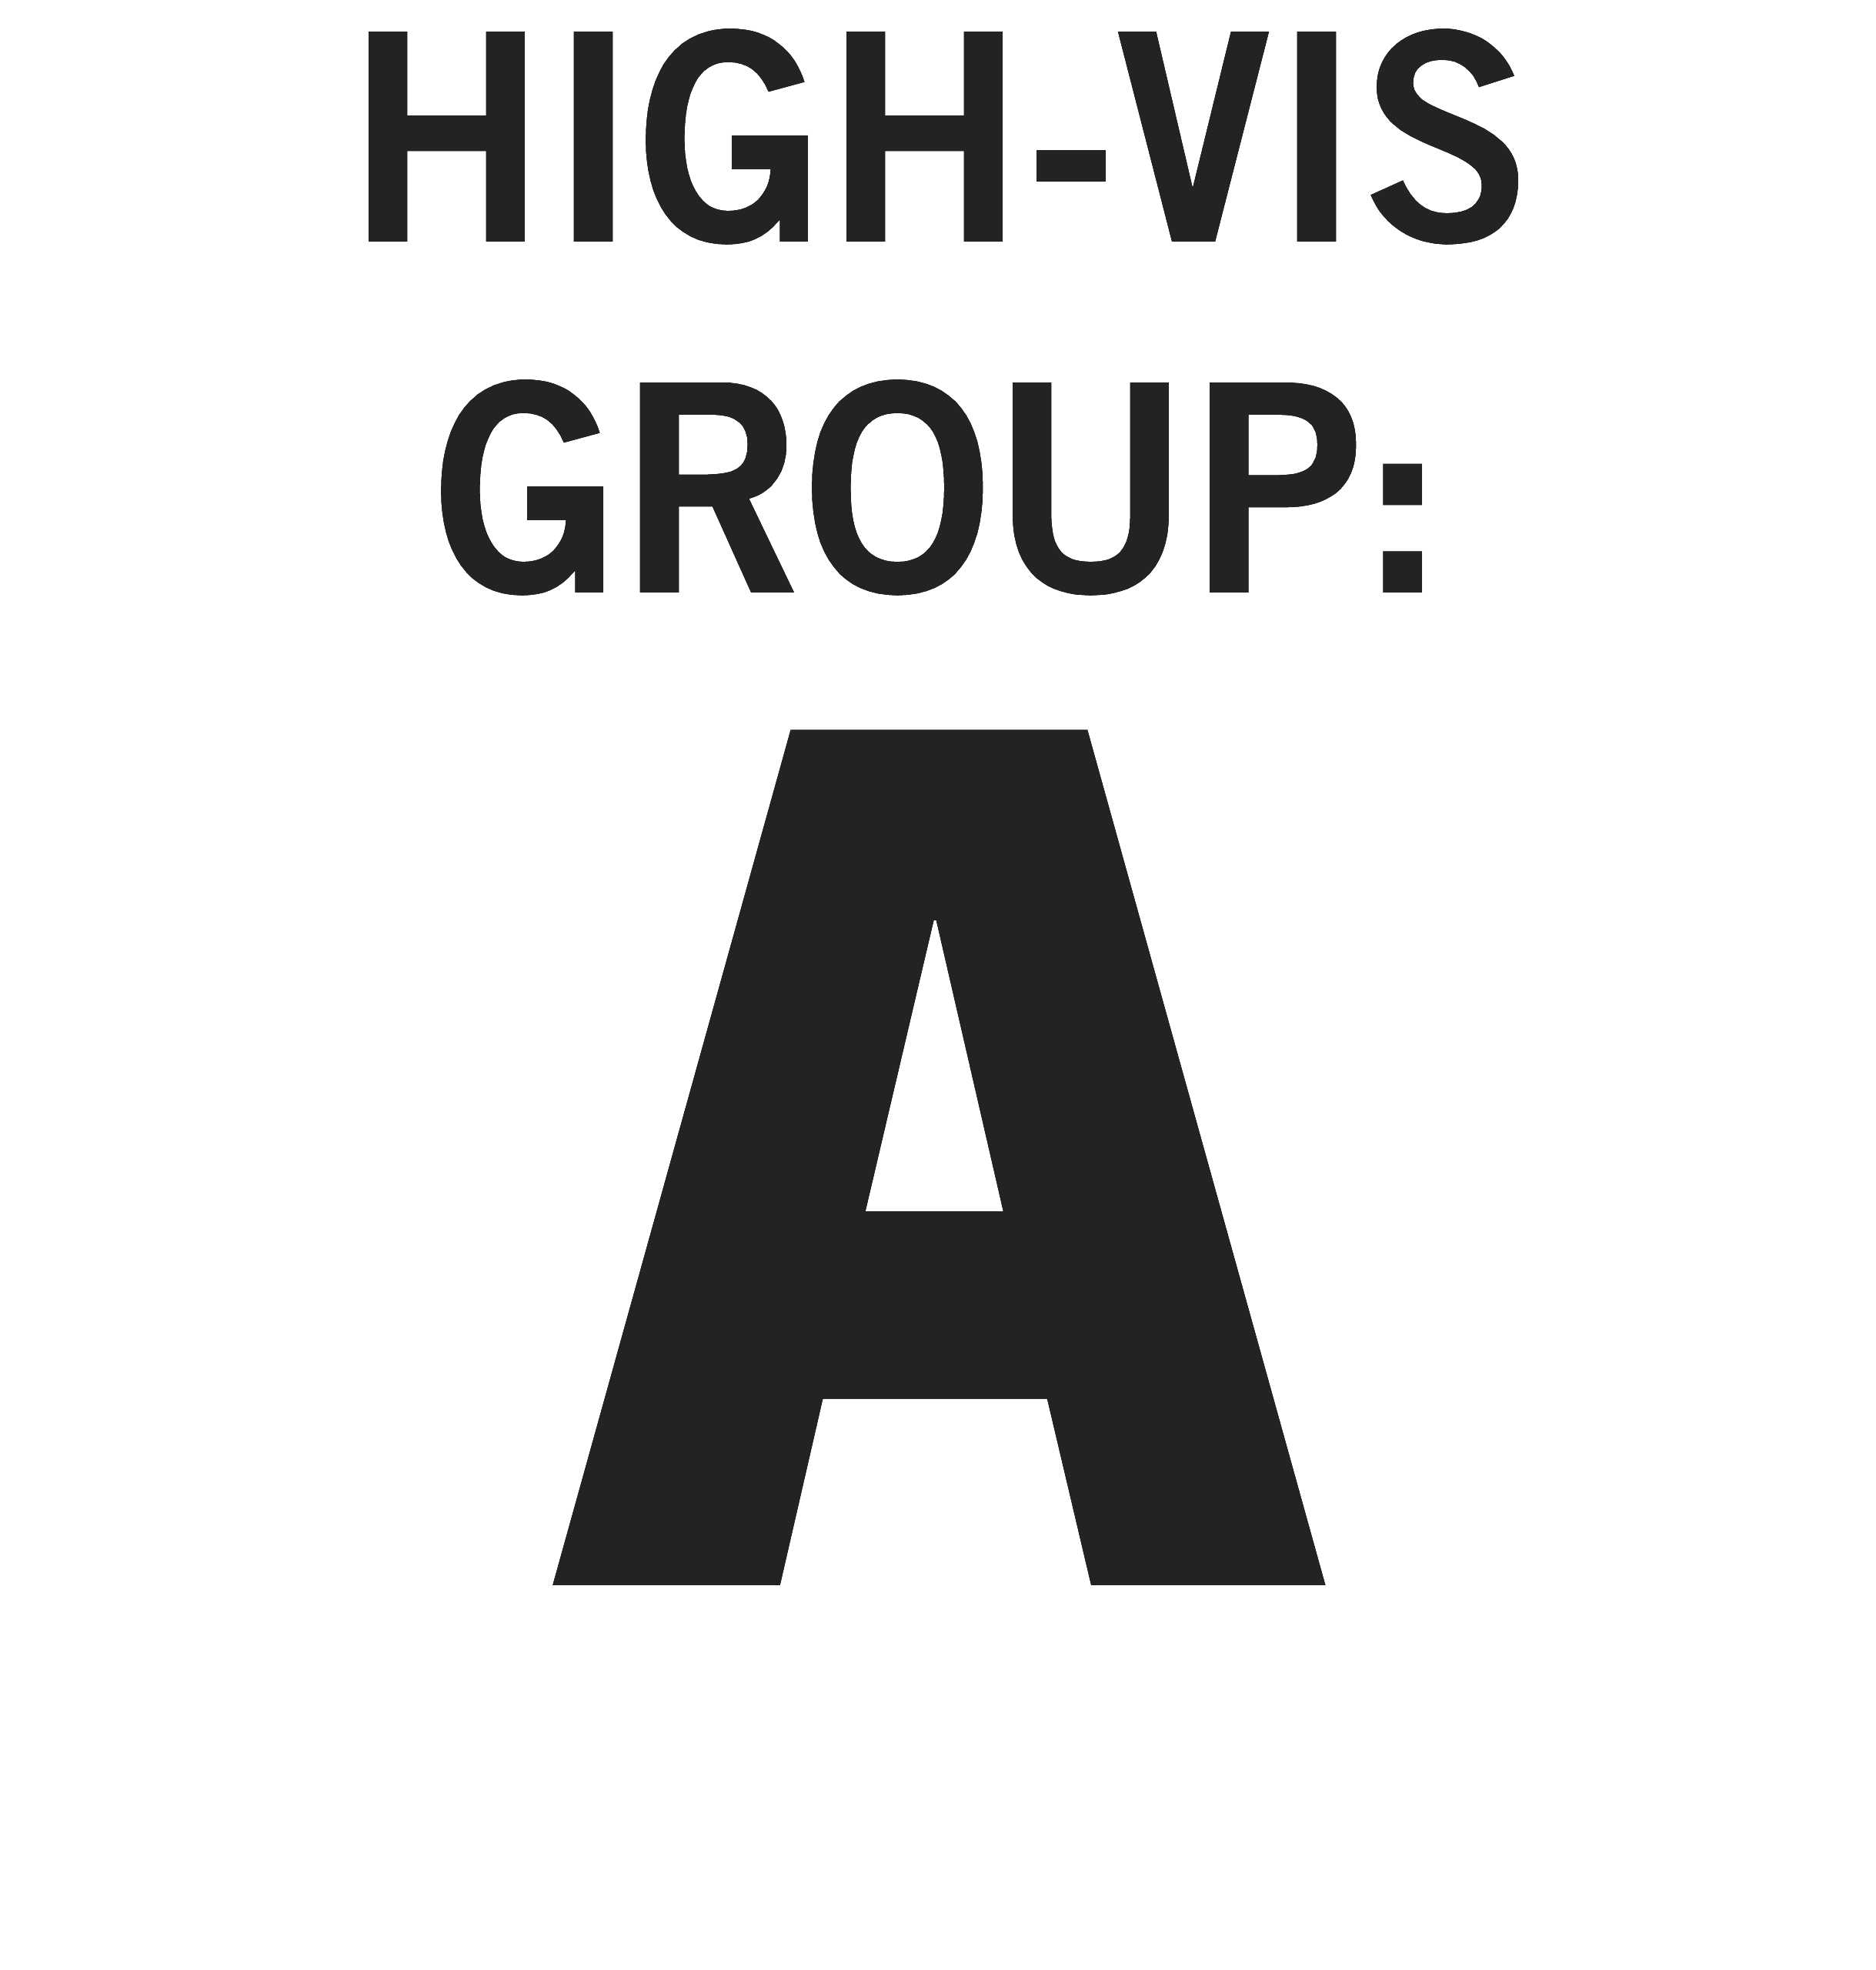 High-vis Group A